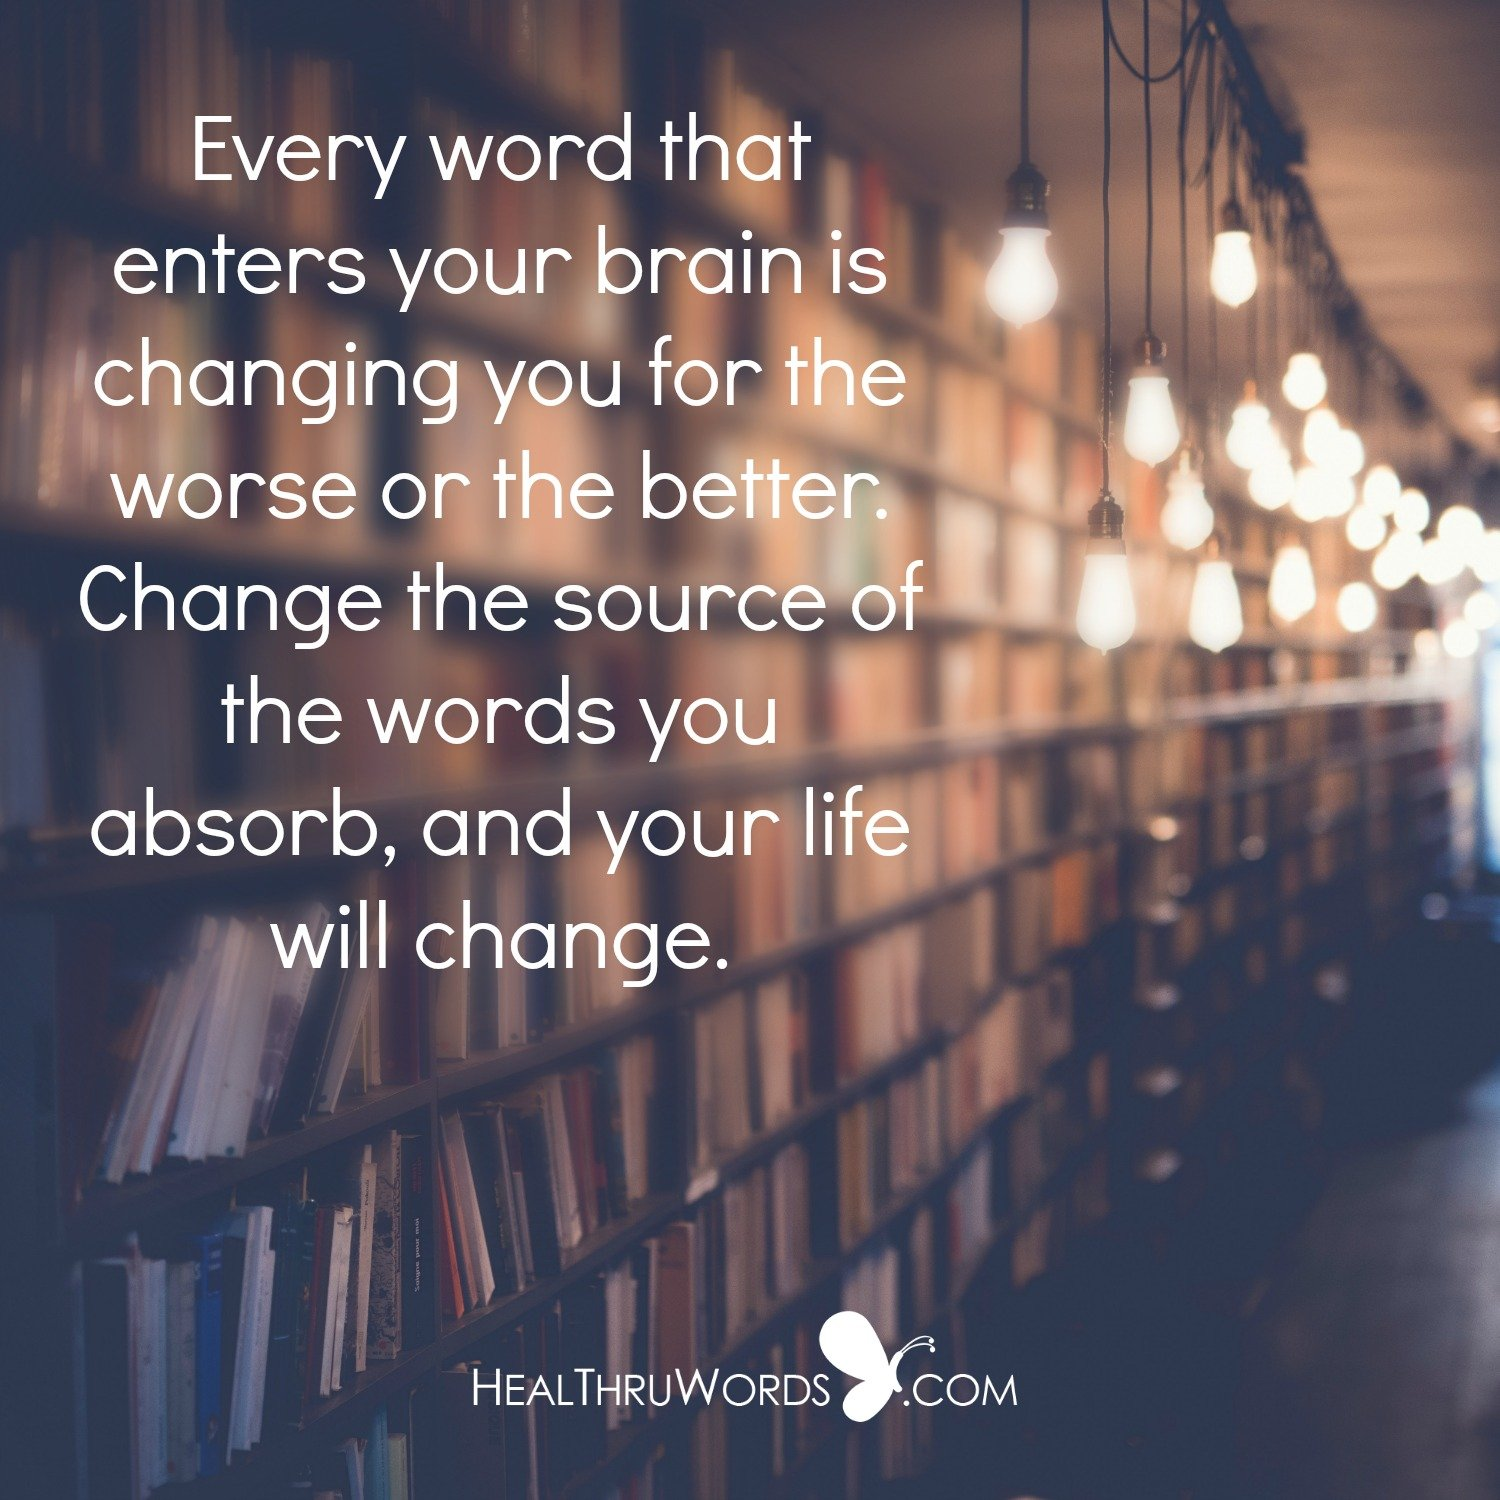 Inspirational Image: External Words